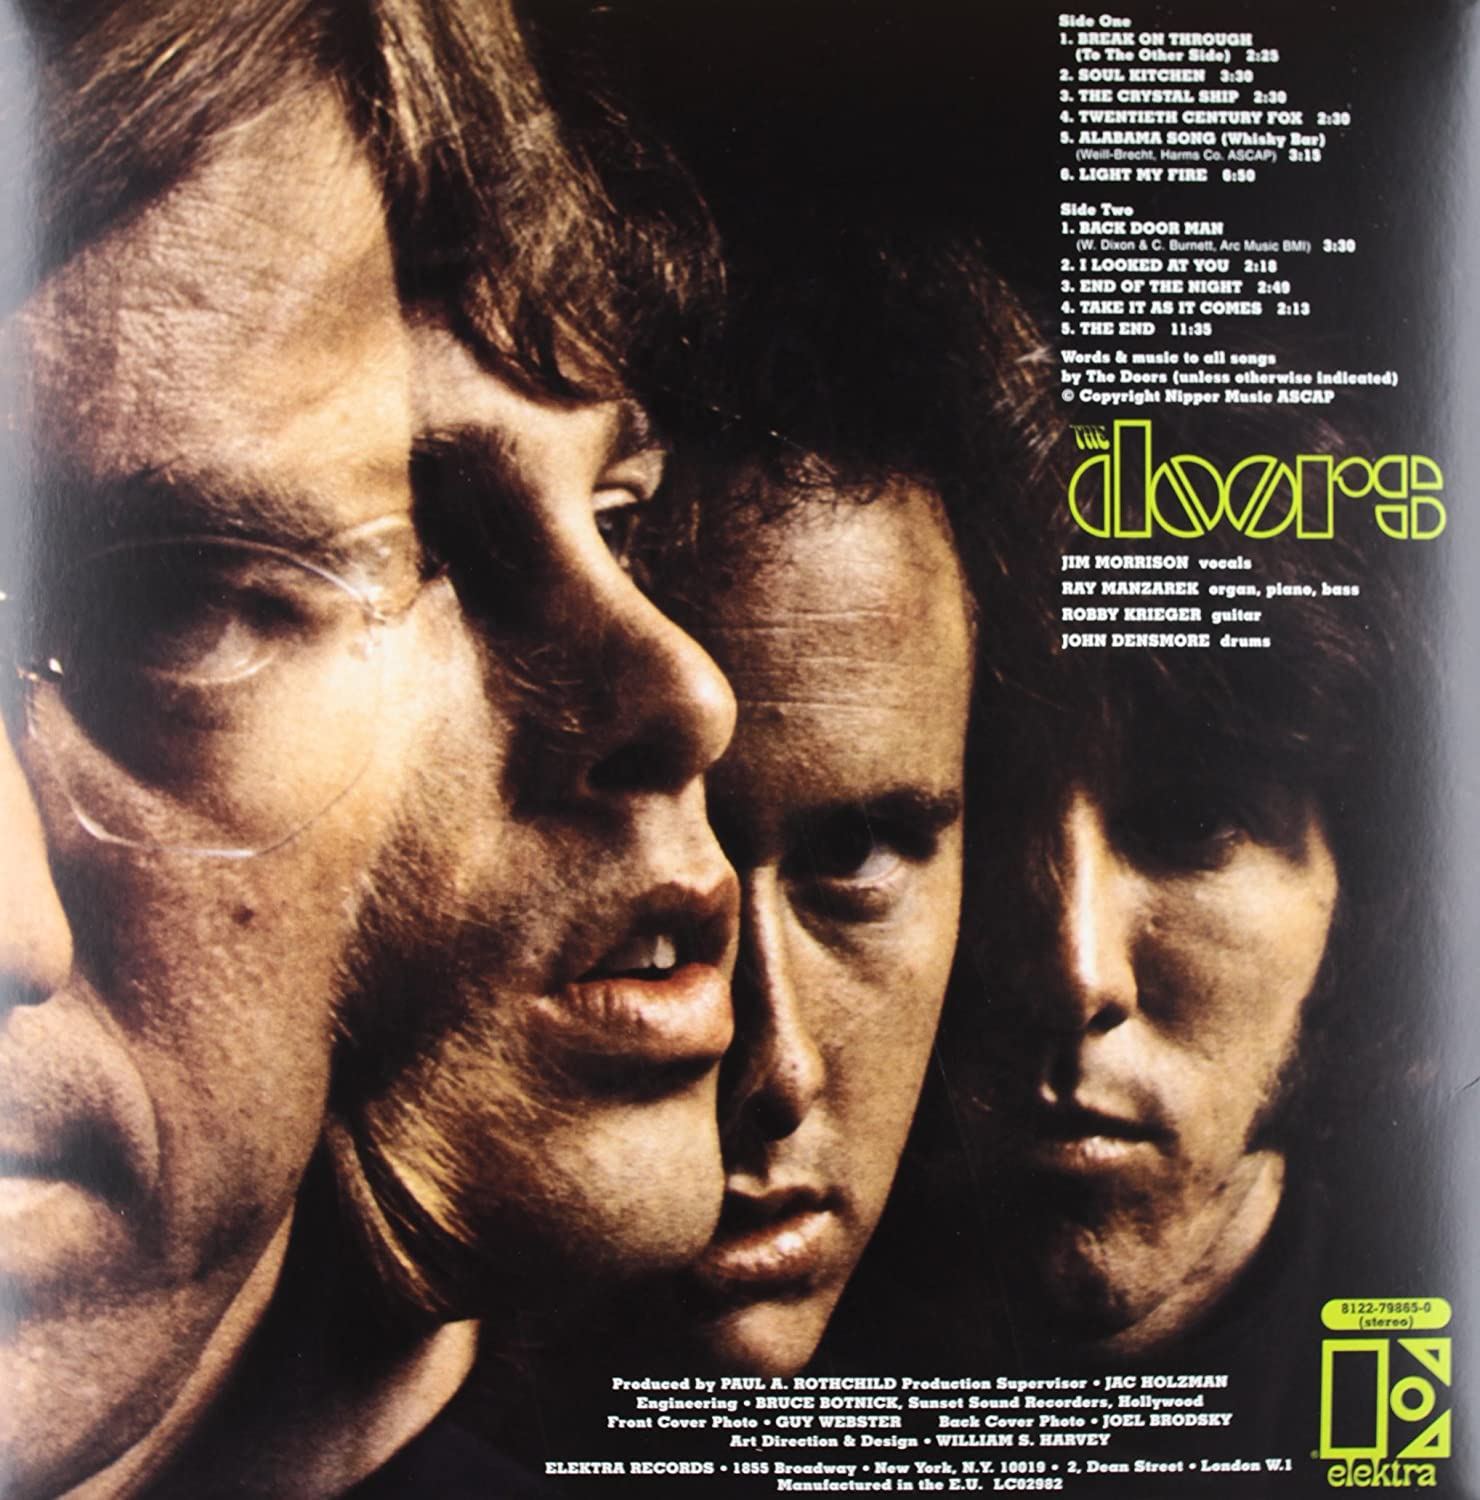 & The Doors - The Doors (180 Gram Vinyl) - Amazon.com Music Pezcame.Com